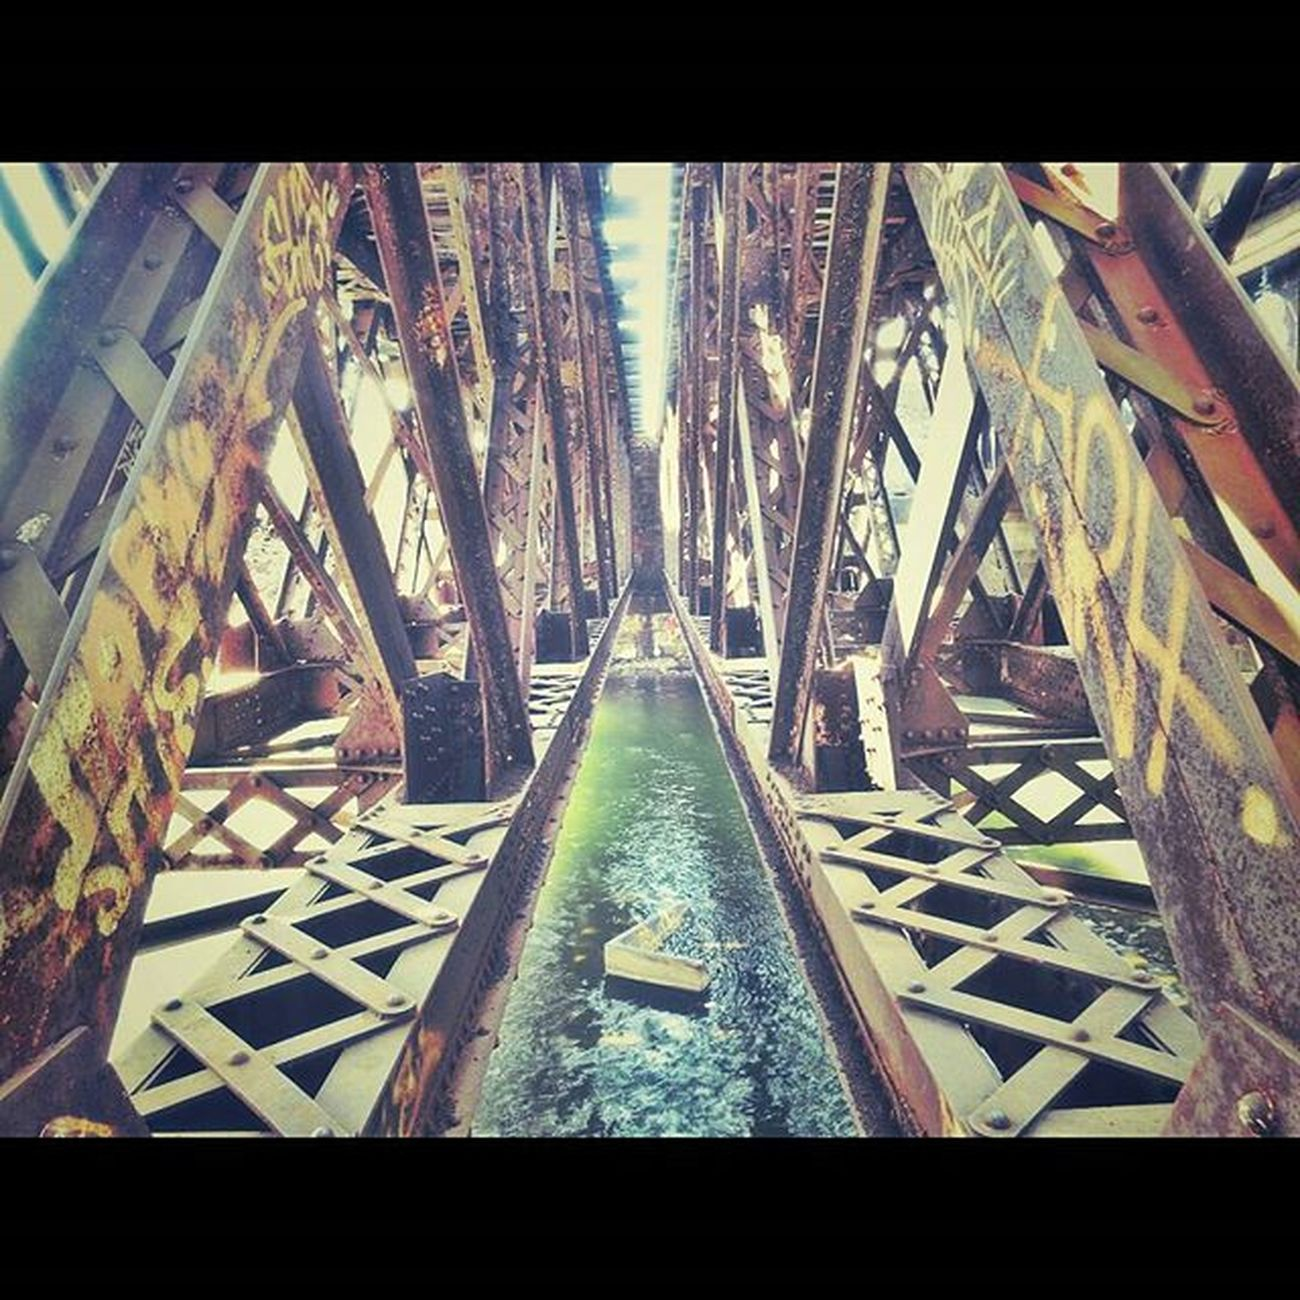 Filtered (w/ Pixlr )view under a railroad bridge in Pittsfield, MA. : : Pittsfield PittsfieldMA IntheBerkshires Berkshires Theberkshires Igers413 Igersnewengland Igersmass Urbanexploration Urbanabstractions Streetshooter Streetphotography RailRoadTracks Traintracks Abstractart Industriallandscape Urbanlandscape ExploreEverything Newtopographics Yetmagazine Noicemag Onbooooooom Rentalmag Createdaily abstractphotography digitalart picoftheday PhotoOfTheDay Overfiltered